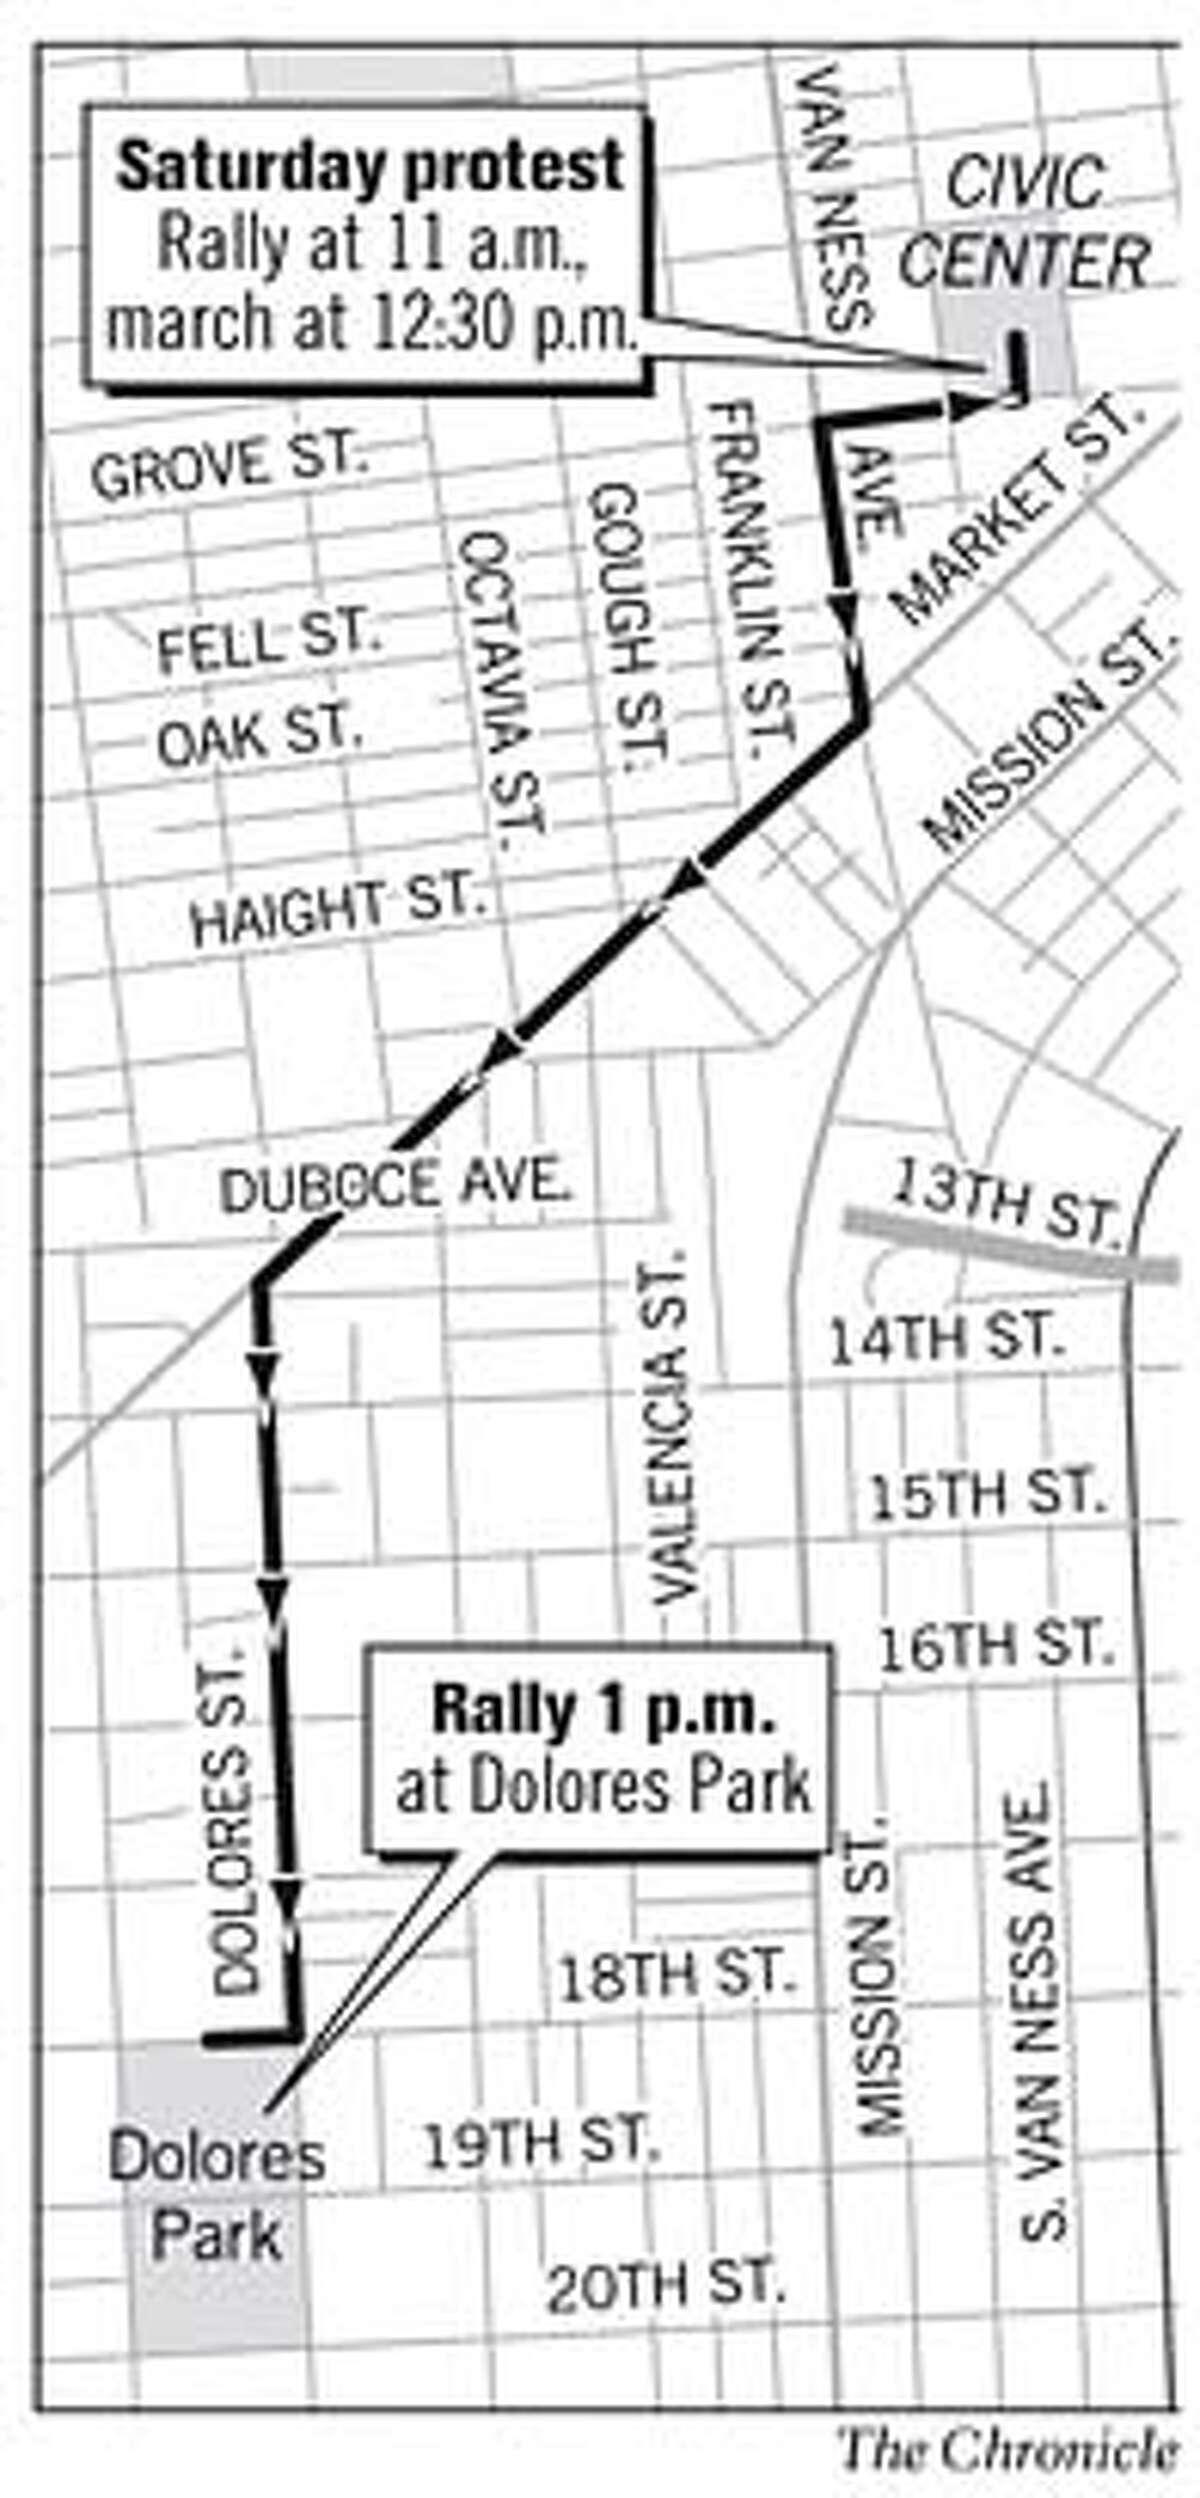 Saturday Protest and Rally. Chronicle Graphic